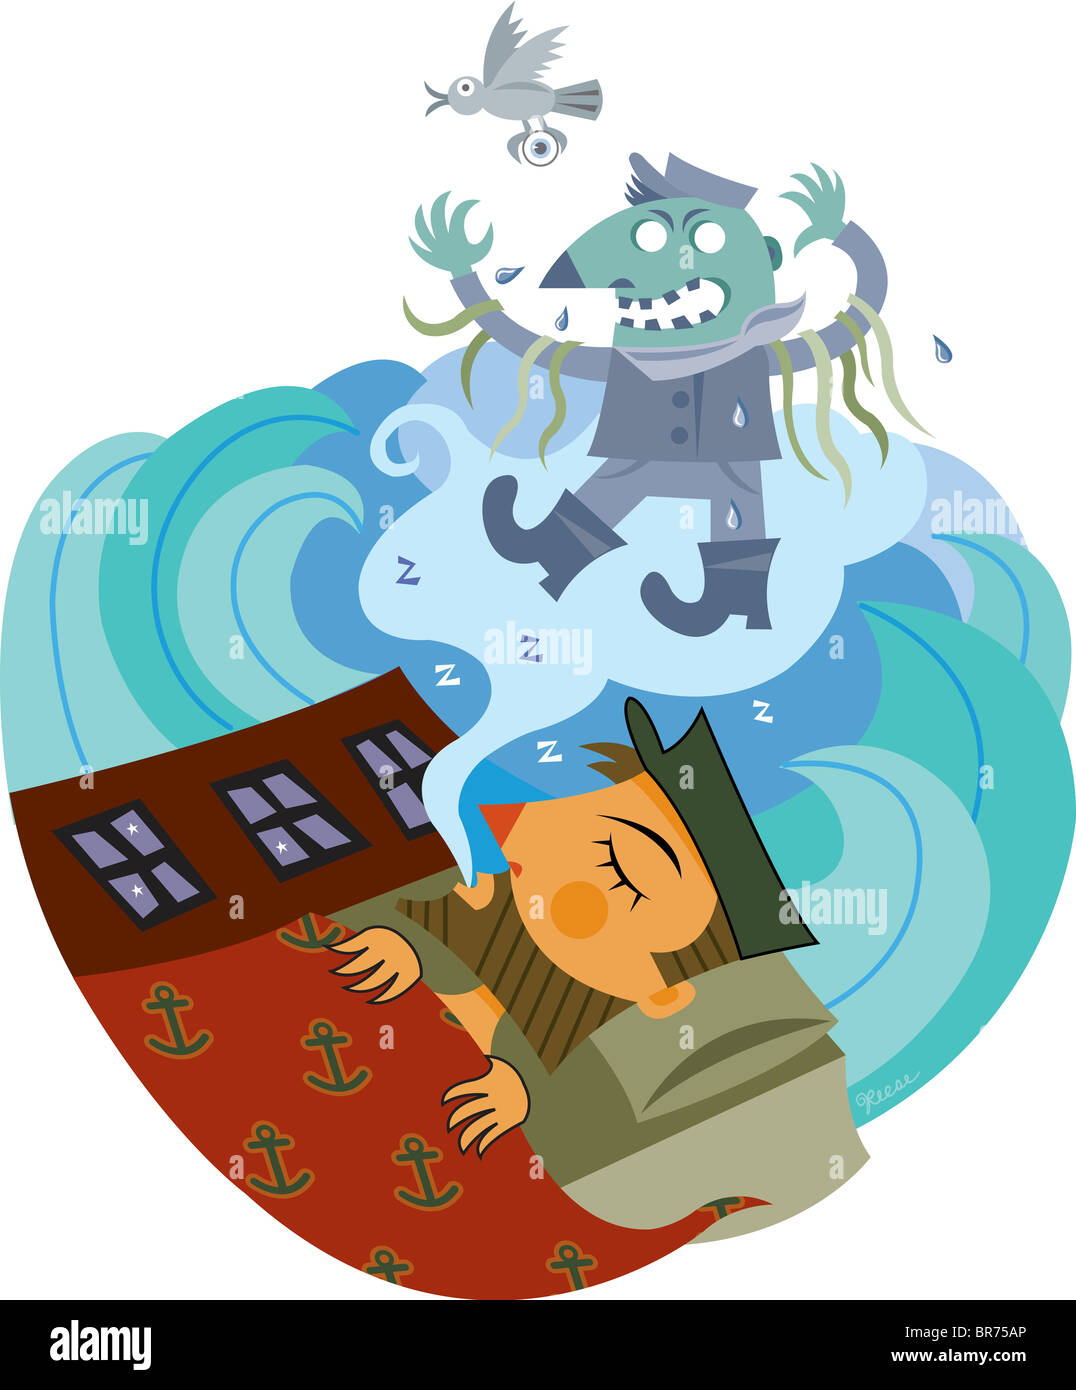 A boy dreaming of a ghoulish sea captain character - Stock Image